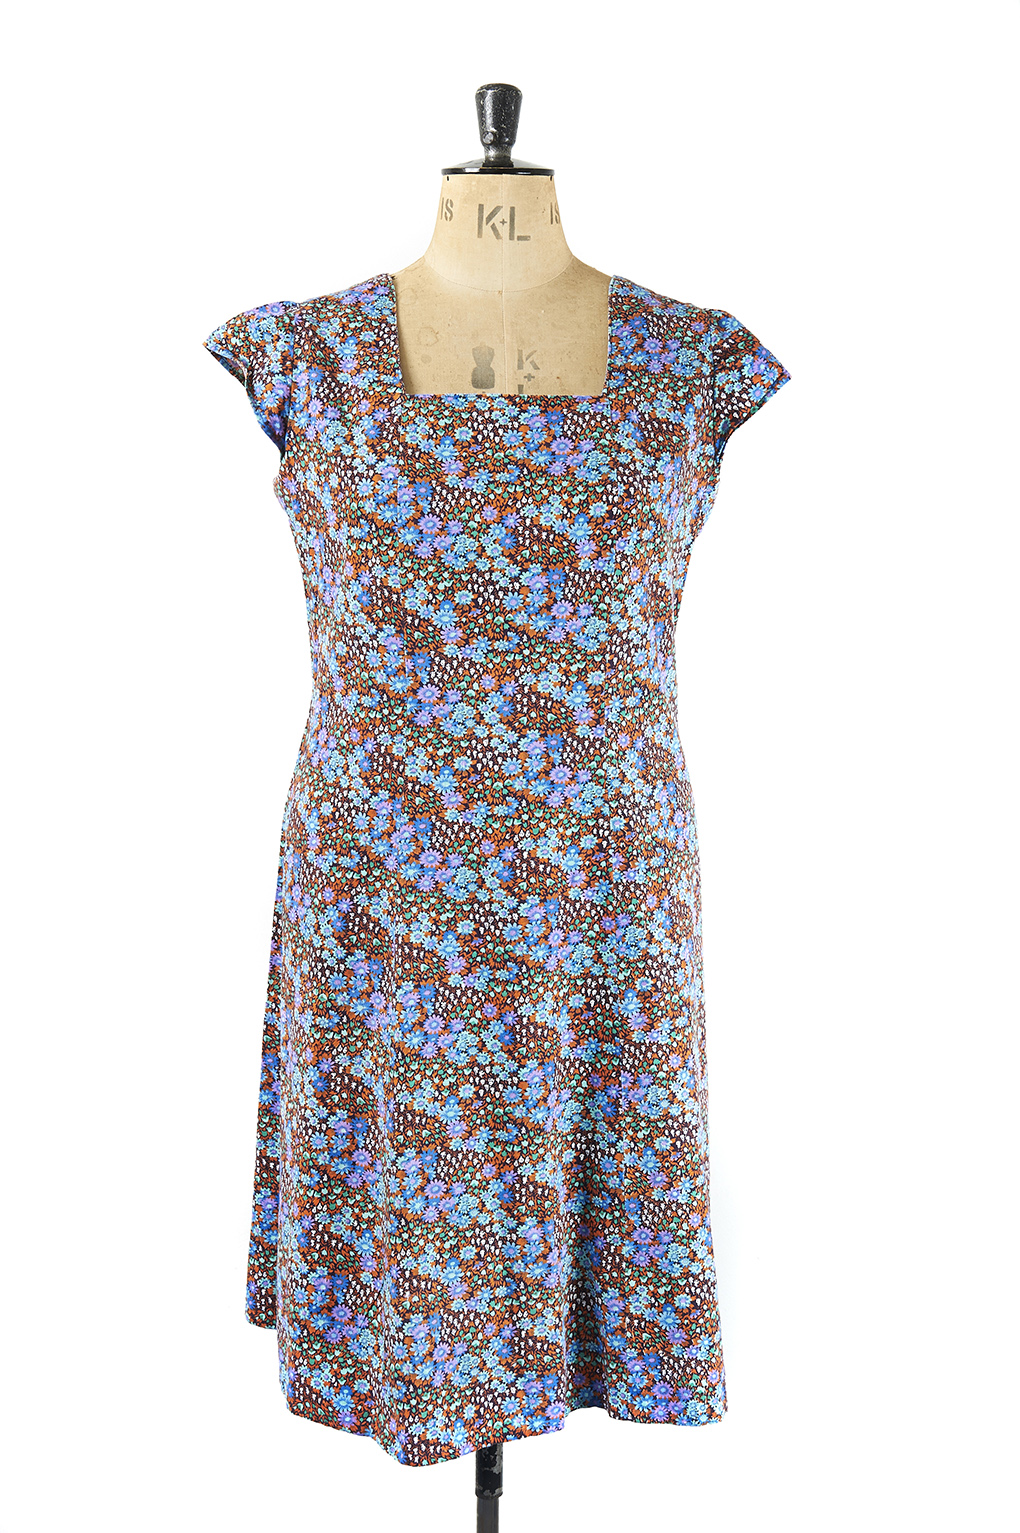 Size 22 Vintage Dress, Margot & Hesse